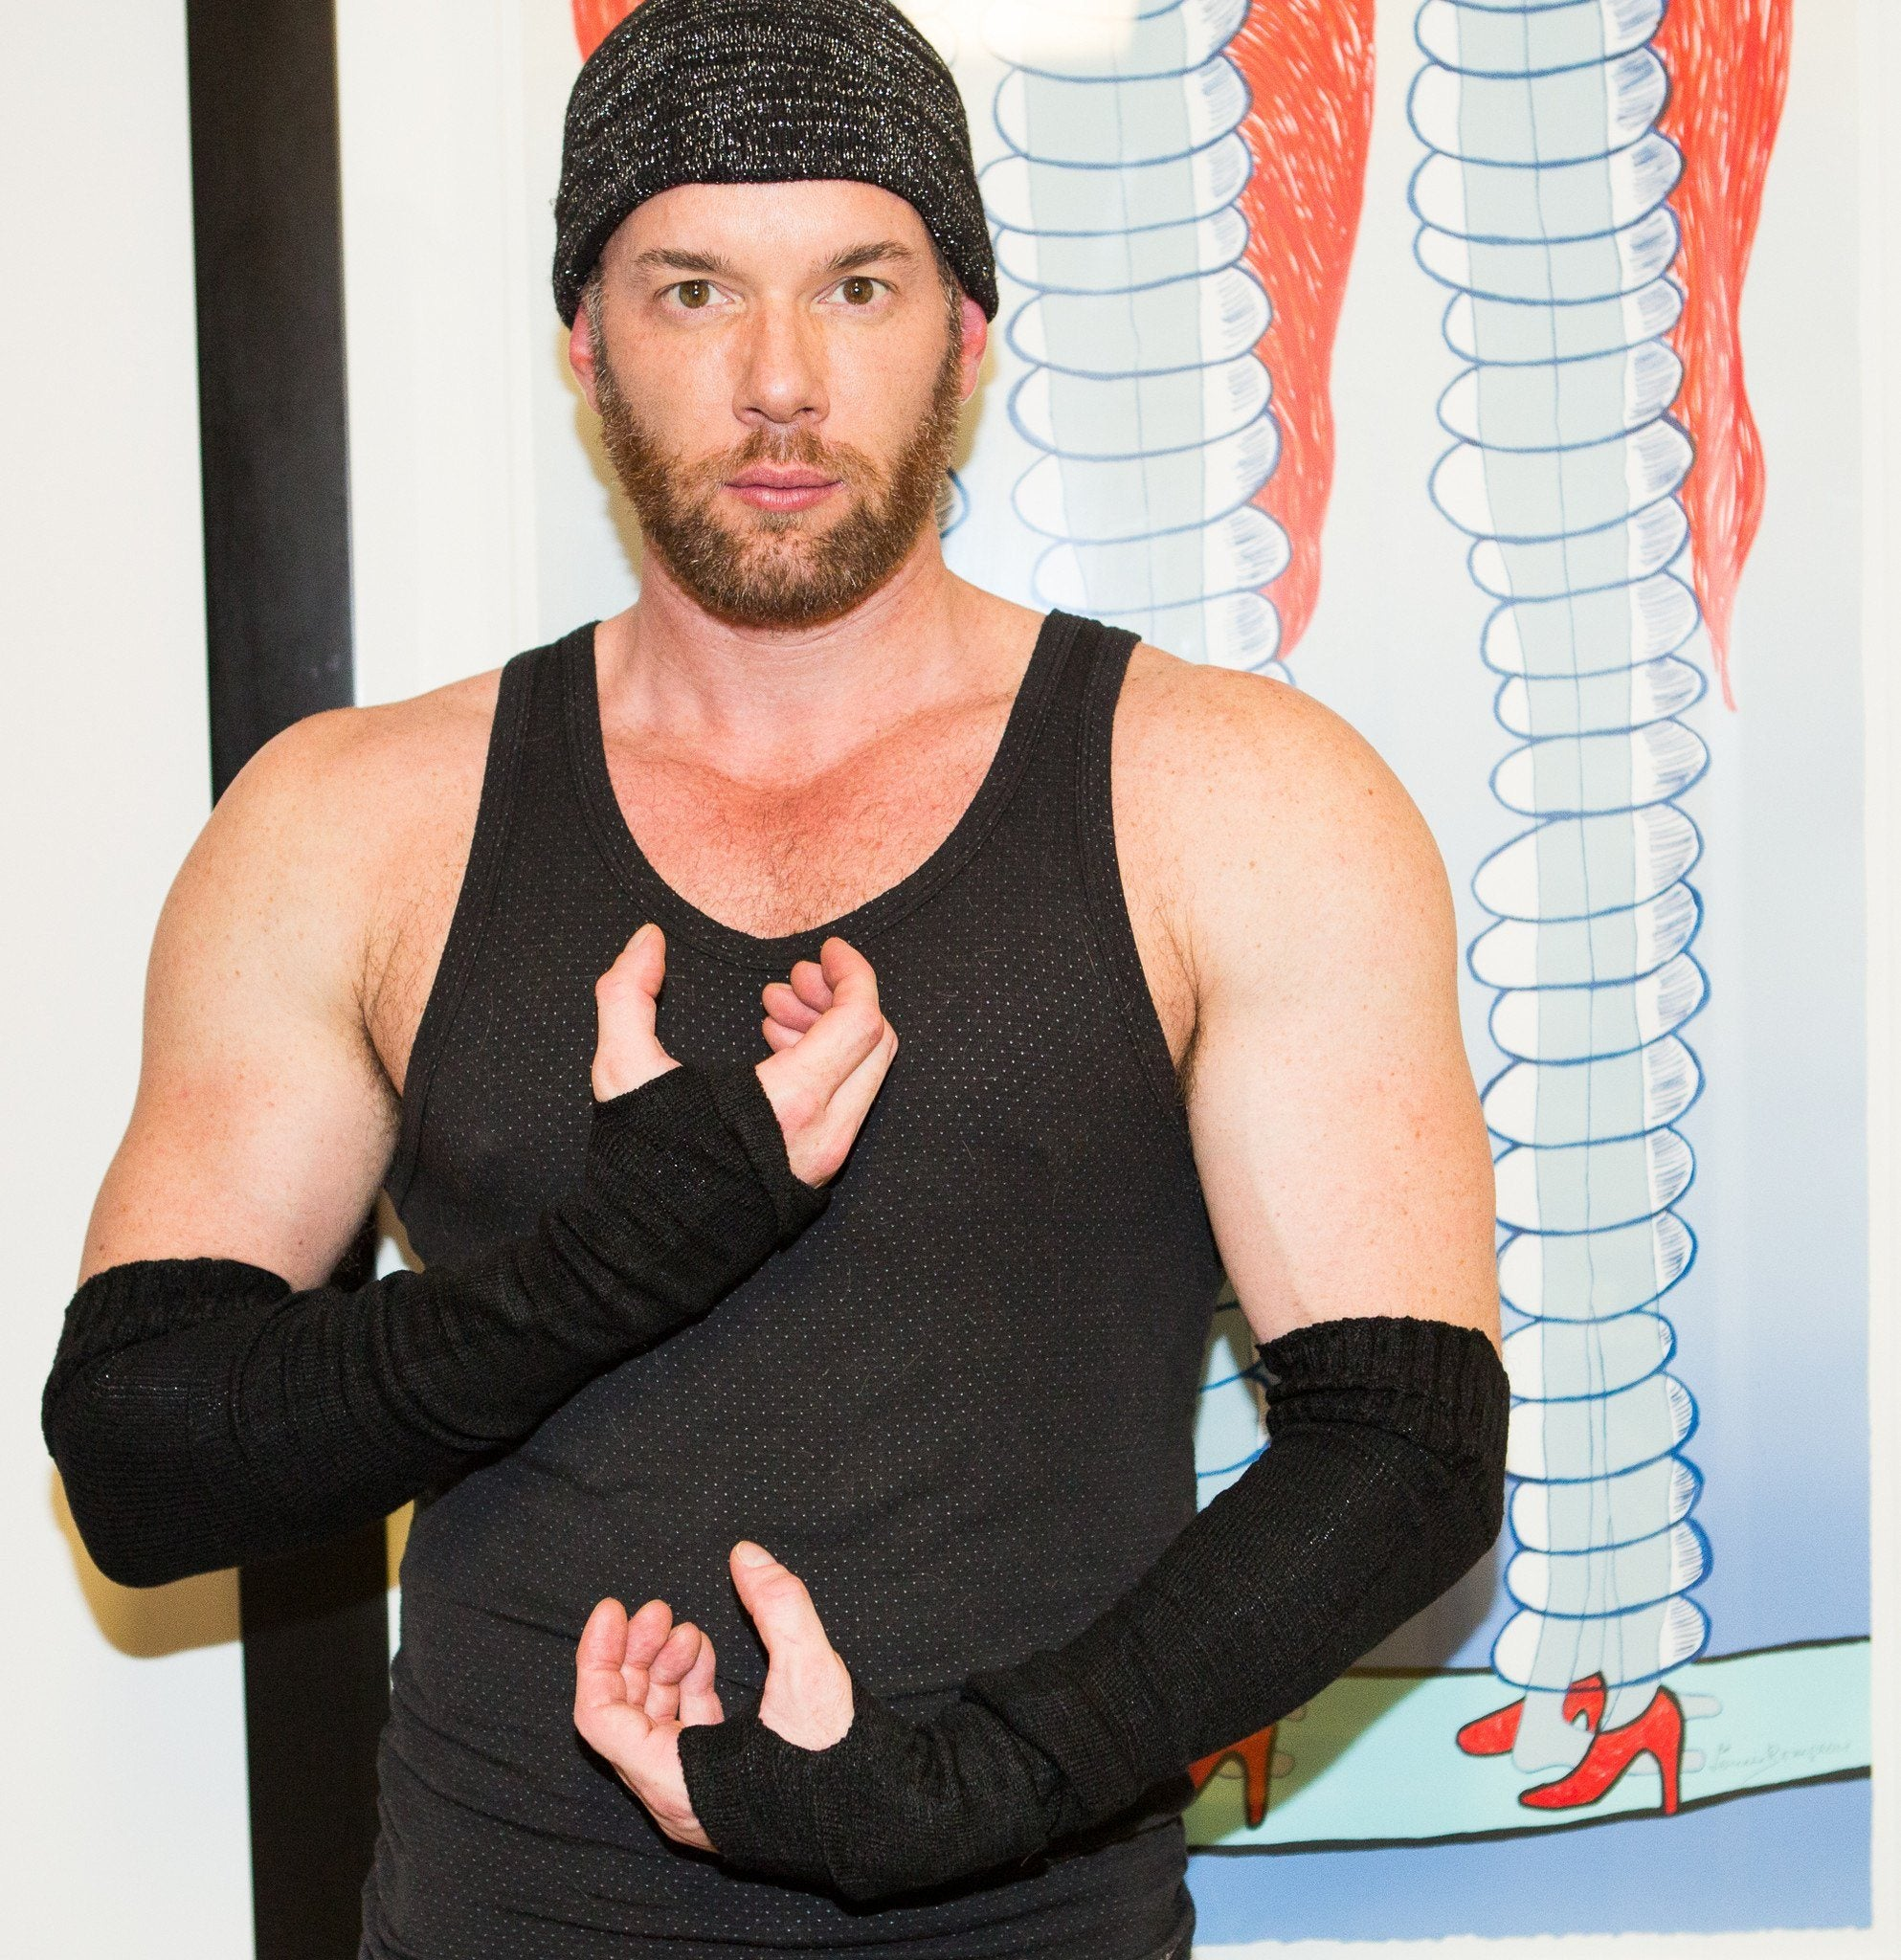 Men's Arm Warmers / Stretch Knit / Thumb Hole @KDdanceNewYork #MadeInUSA - 3